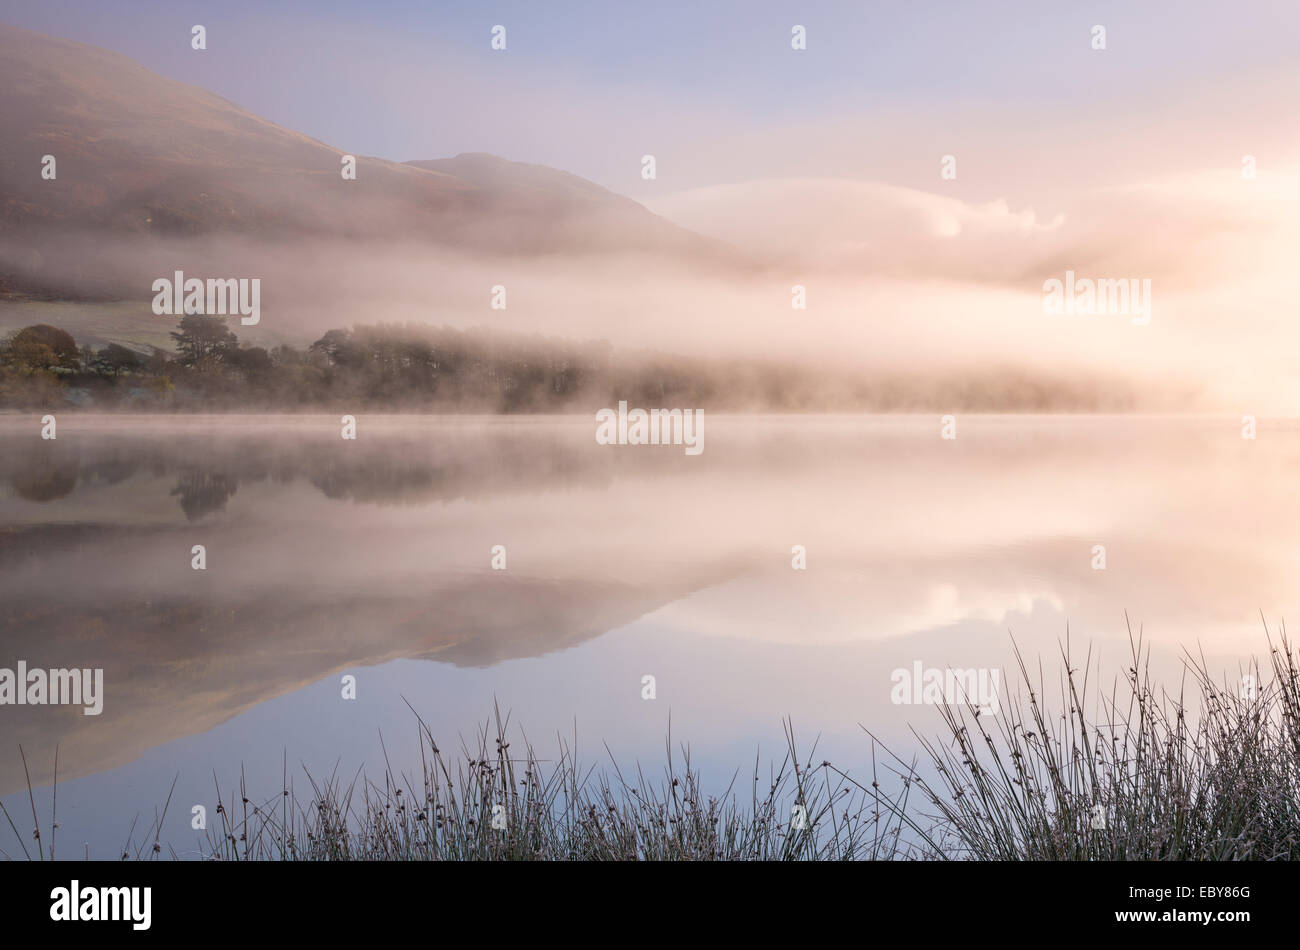 Misty morning over Loweswater in the Lake District, Cumbria, England. Autumn (November) 2013. - Stock Image